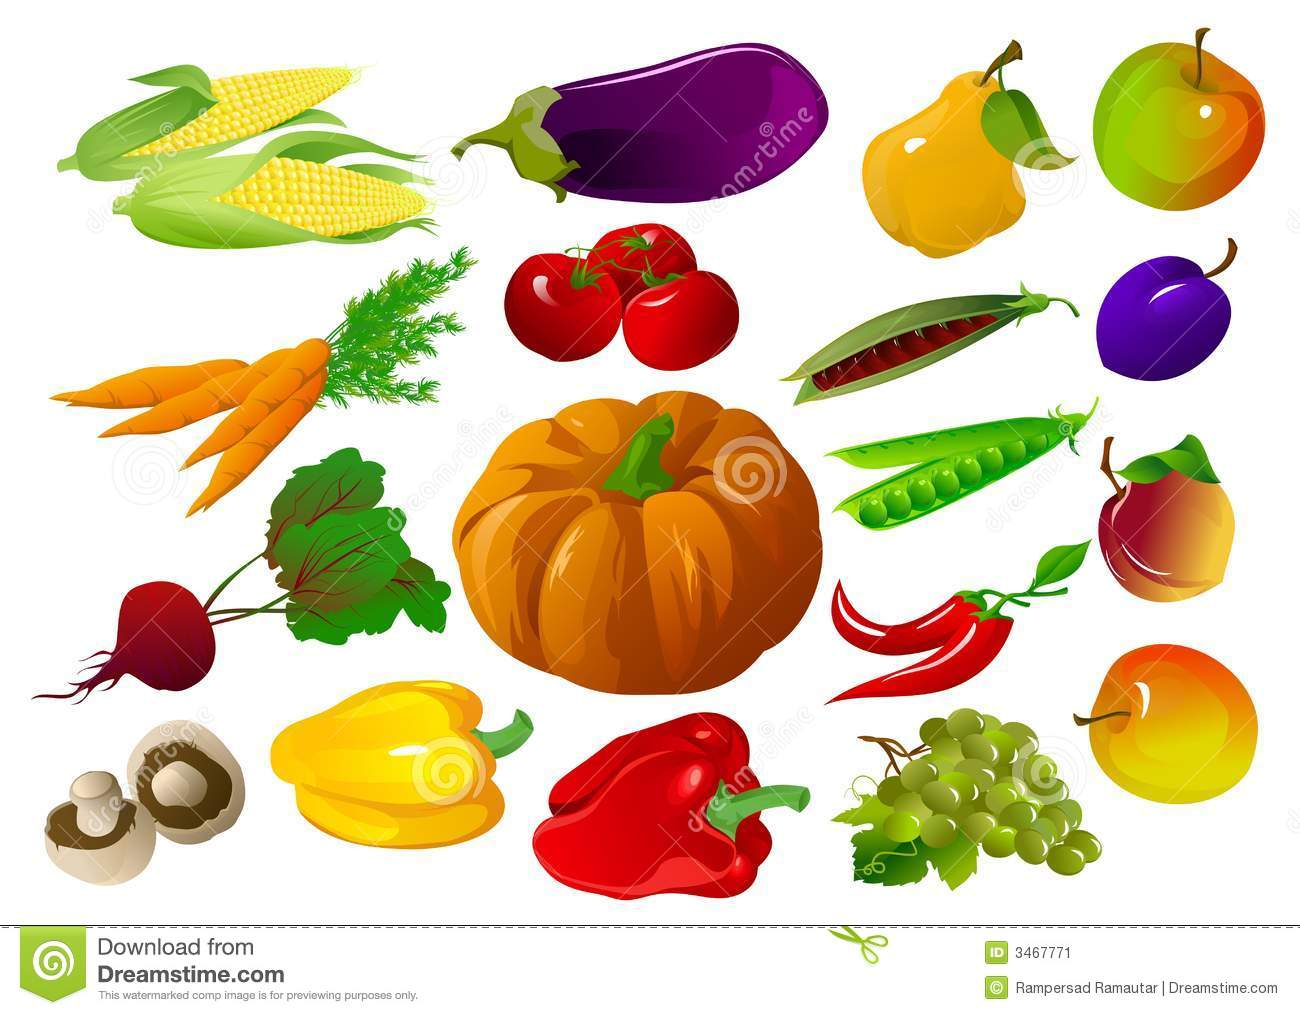 Fruits And Vegetables Stock Image Image -Fruits And Vegetables Stock Image Image 3467771-13